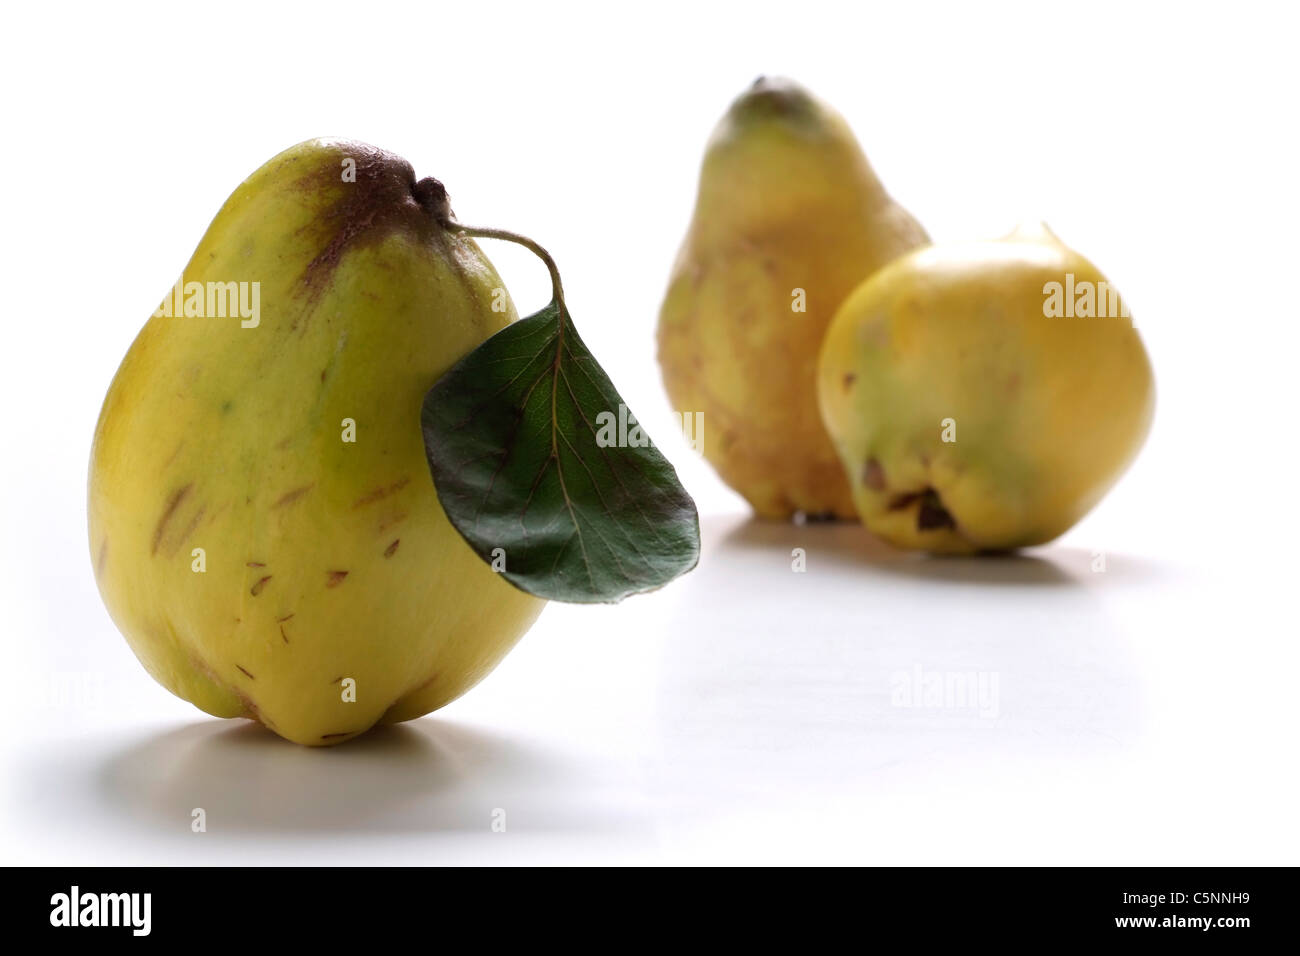 Three whole quinces on white - Stock Image